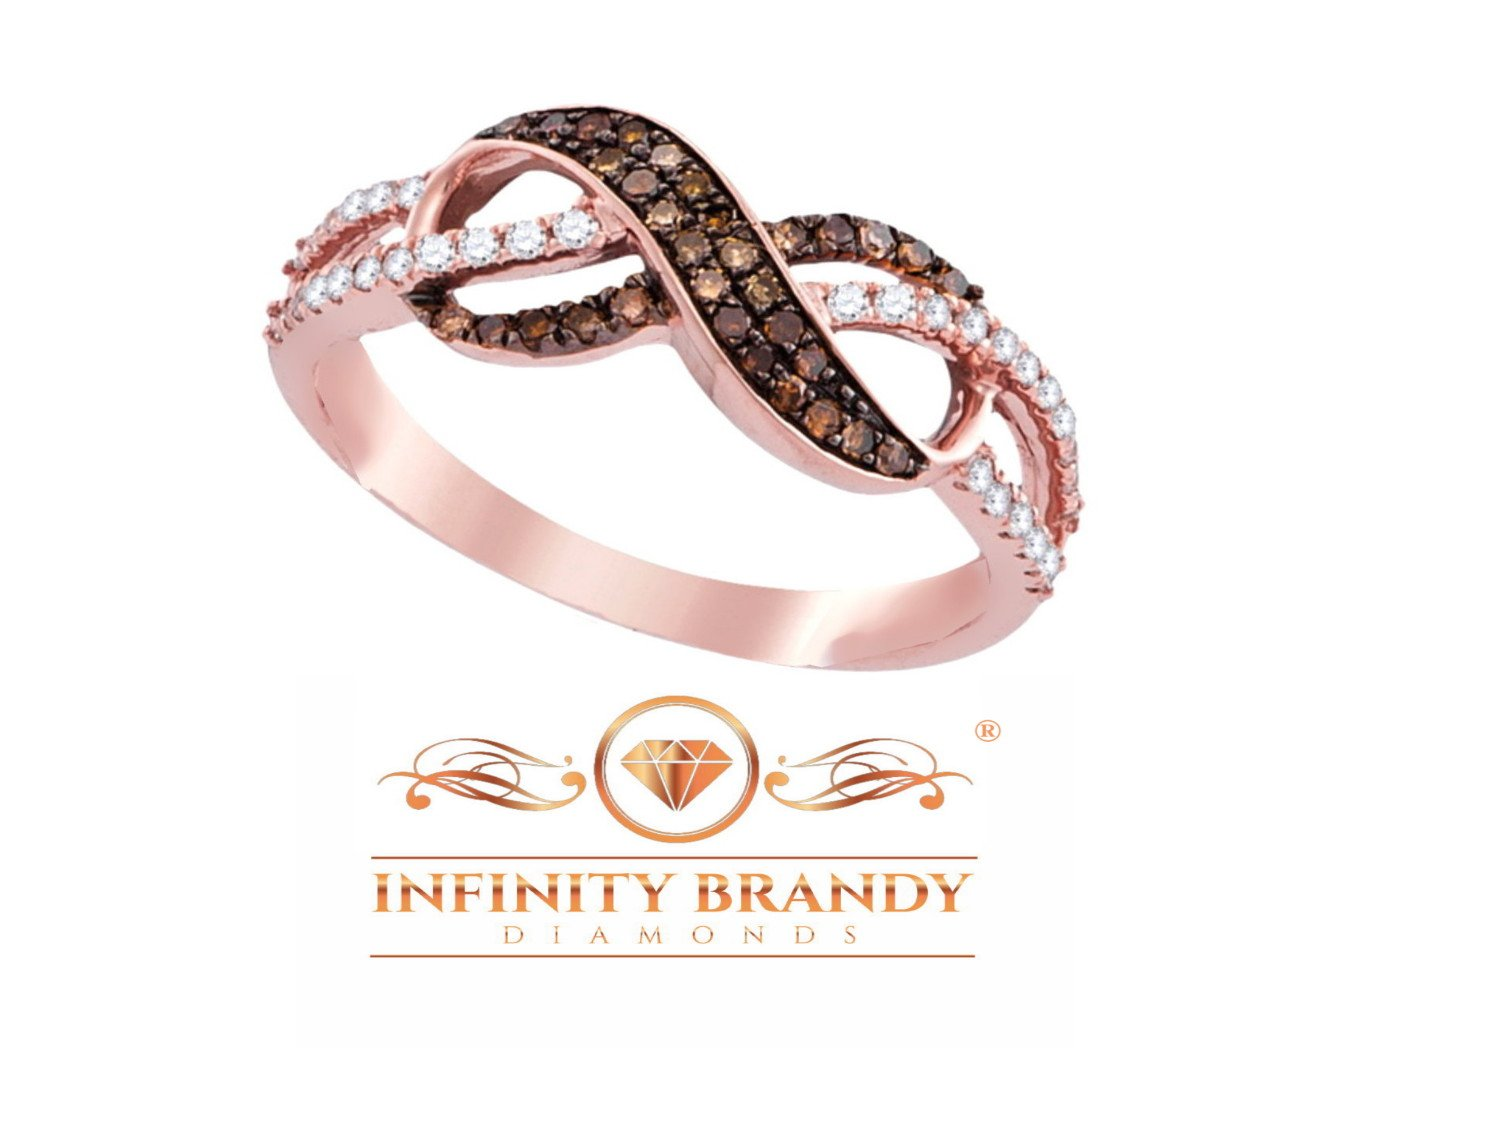 Infinity Brandy Diamonds Chocolate Brown 14k Rose Gold Beautiful Lovely Ring 1/3 Ctw. by Infinity Brandy Diamonds